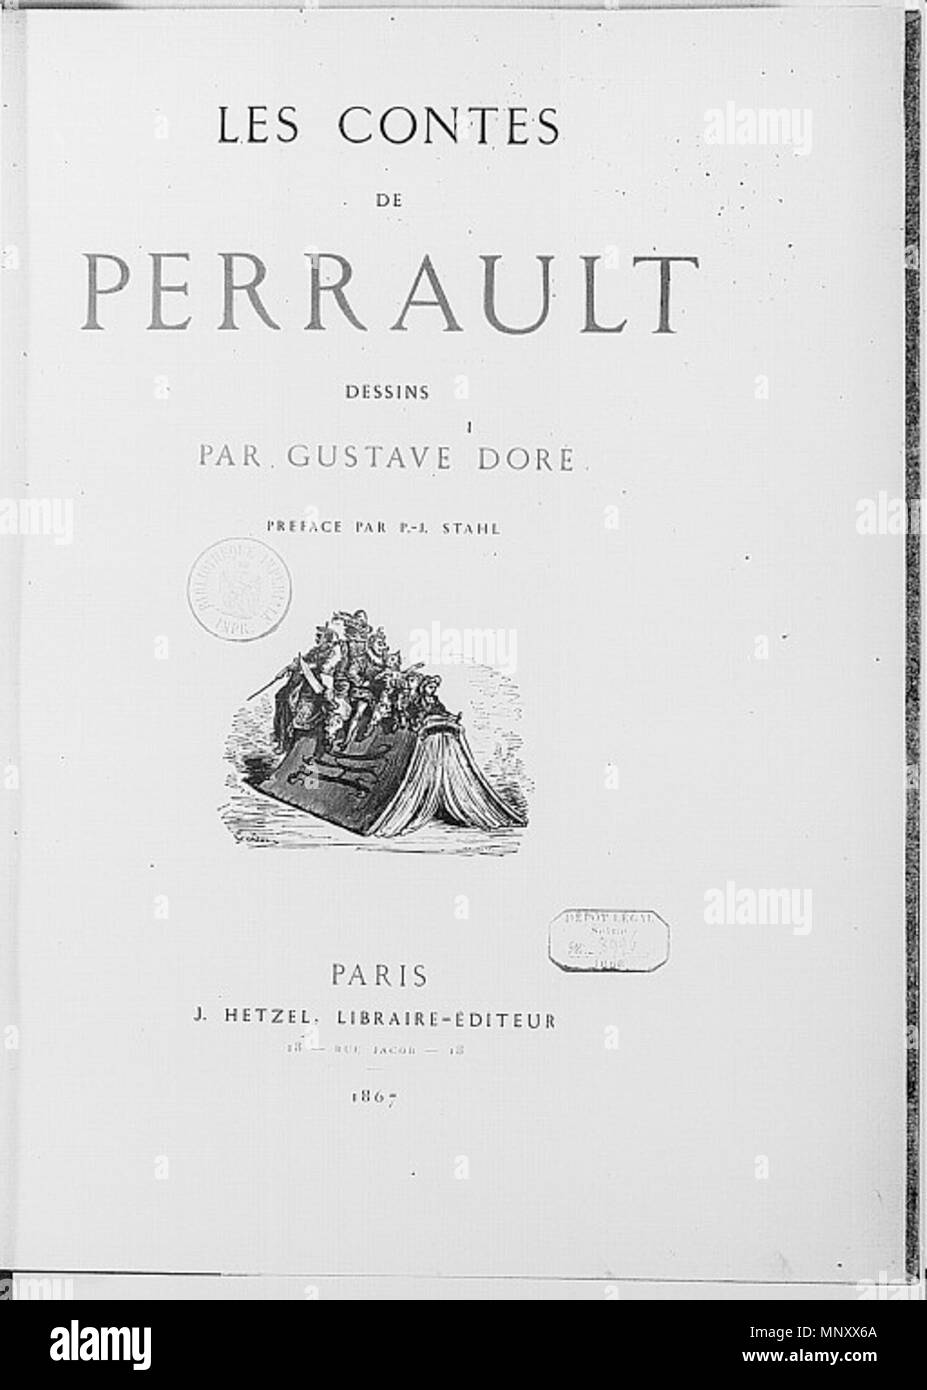 List of Charles Perraults tales according to the studies of French literary critics